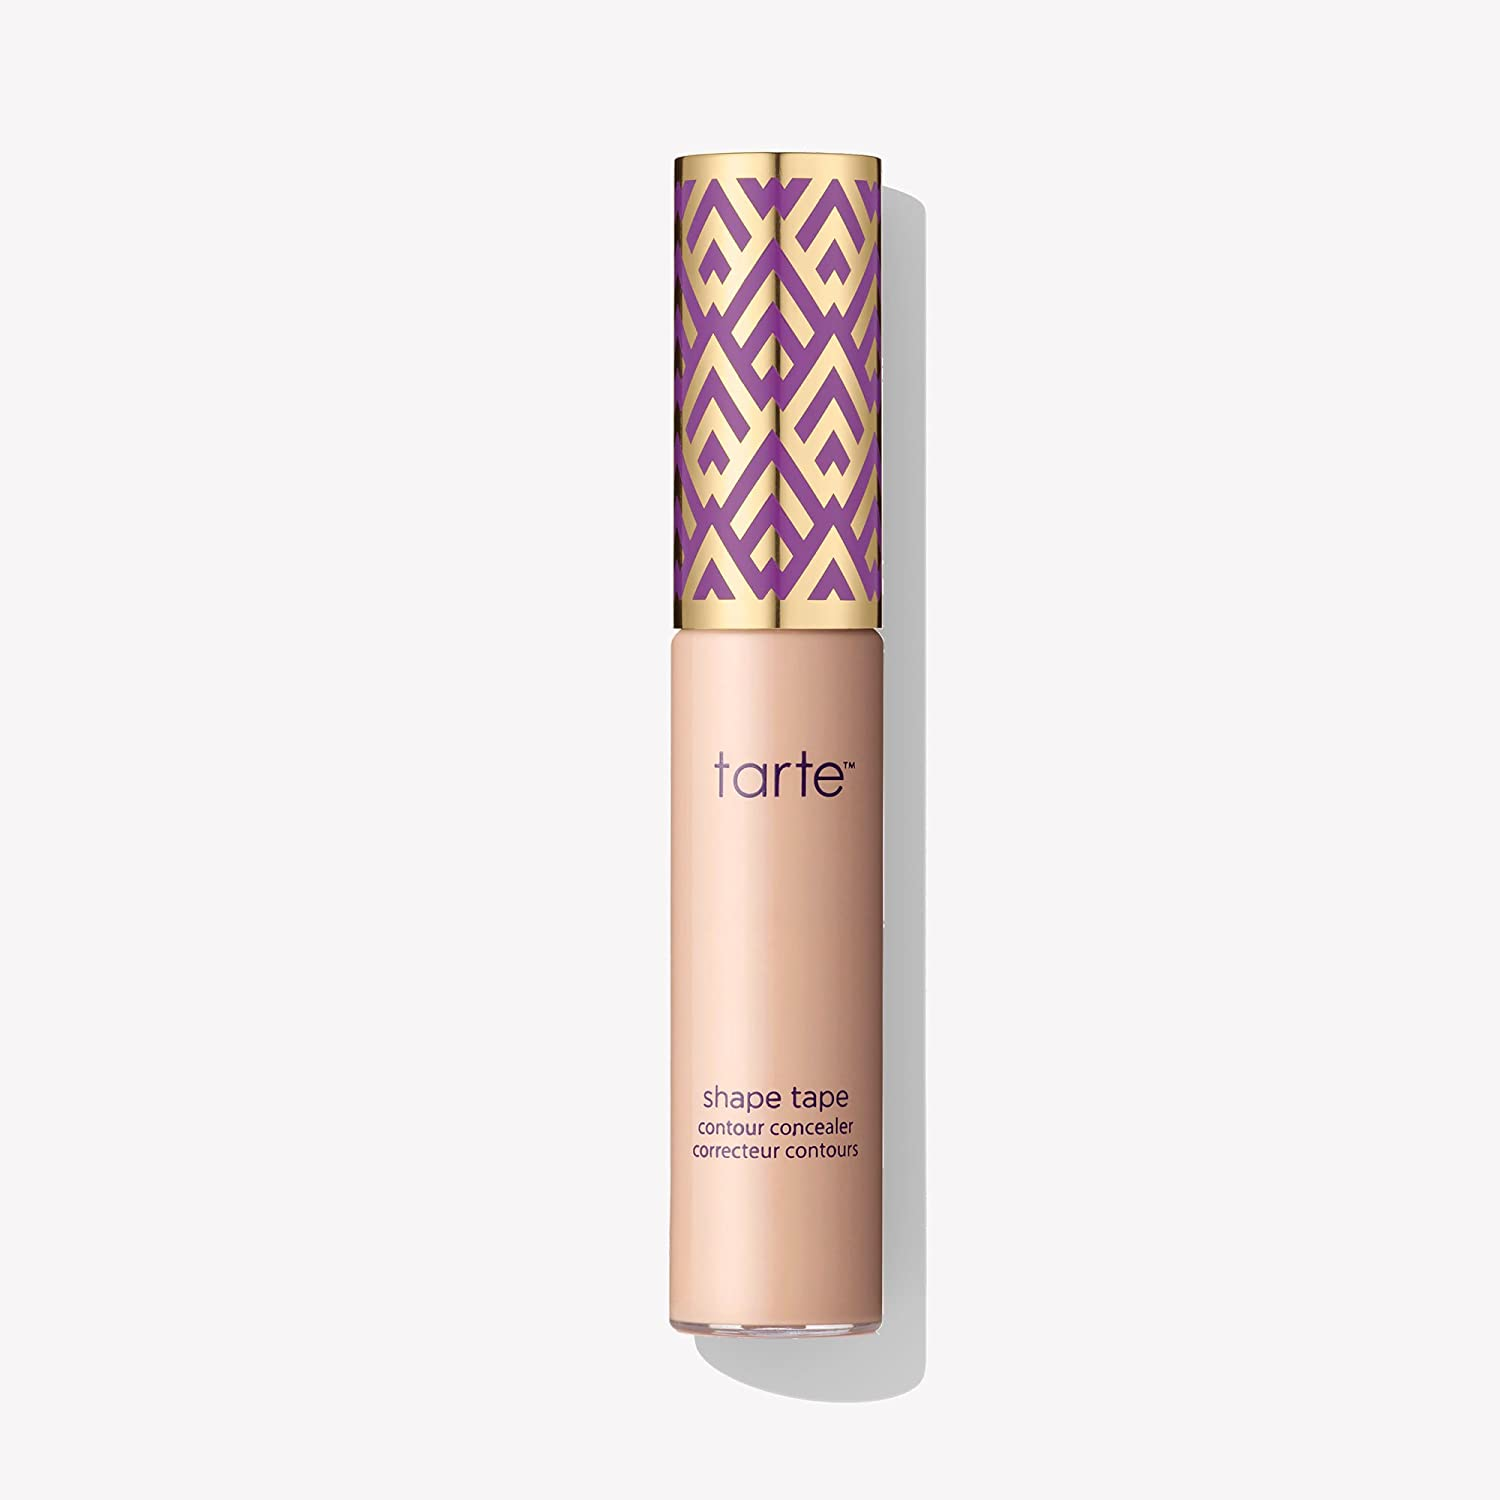 Tarte Double Duty Beauty Shape Tape Contour Concealer - Fair Neutral